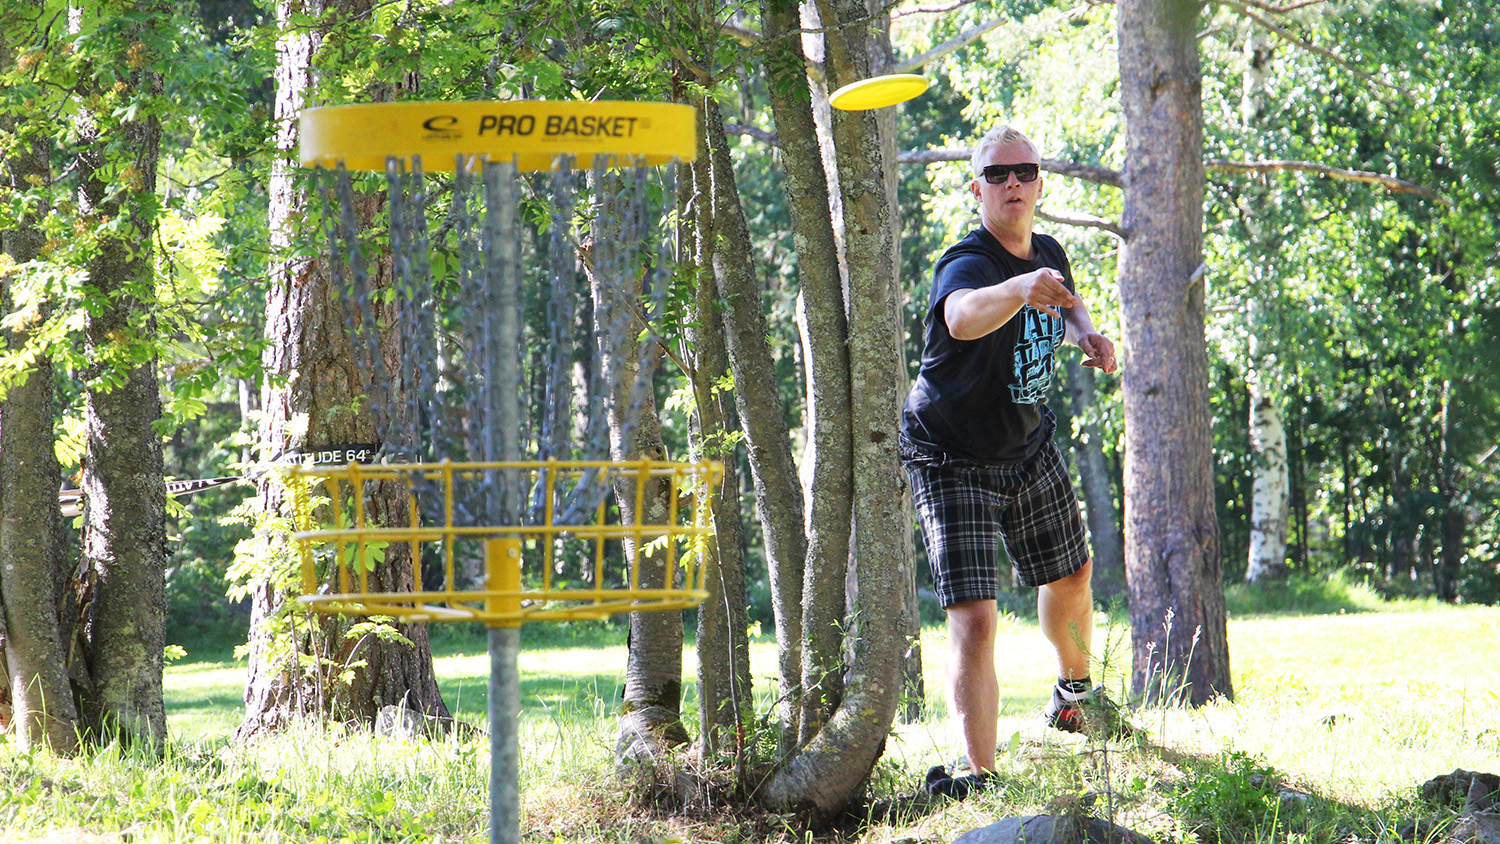 Disc Golf, also called Frisbee Golf, is all about getting the disc in the basket in the least amount of throws.